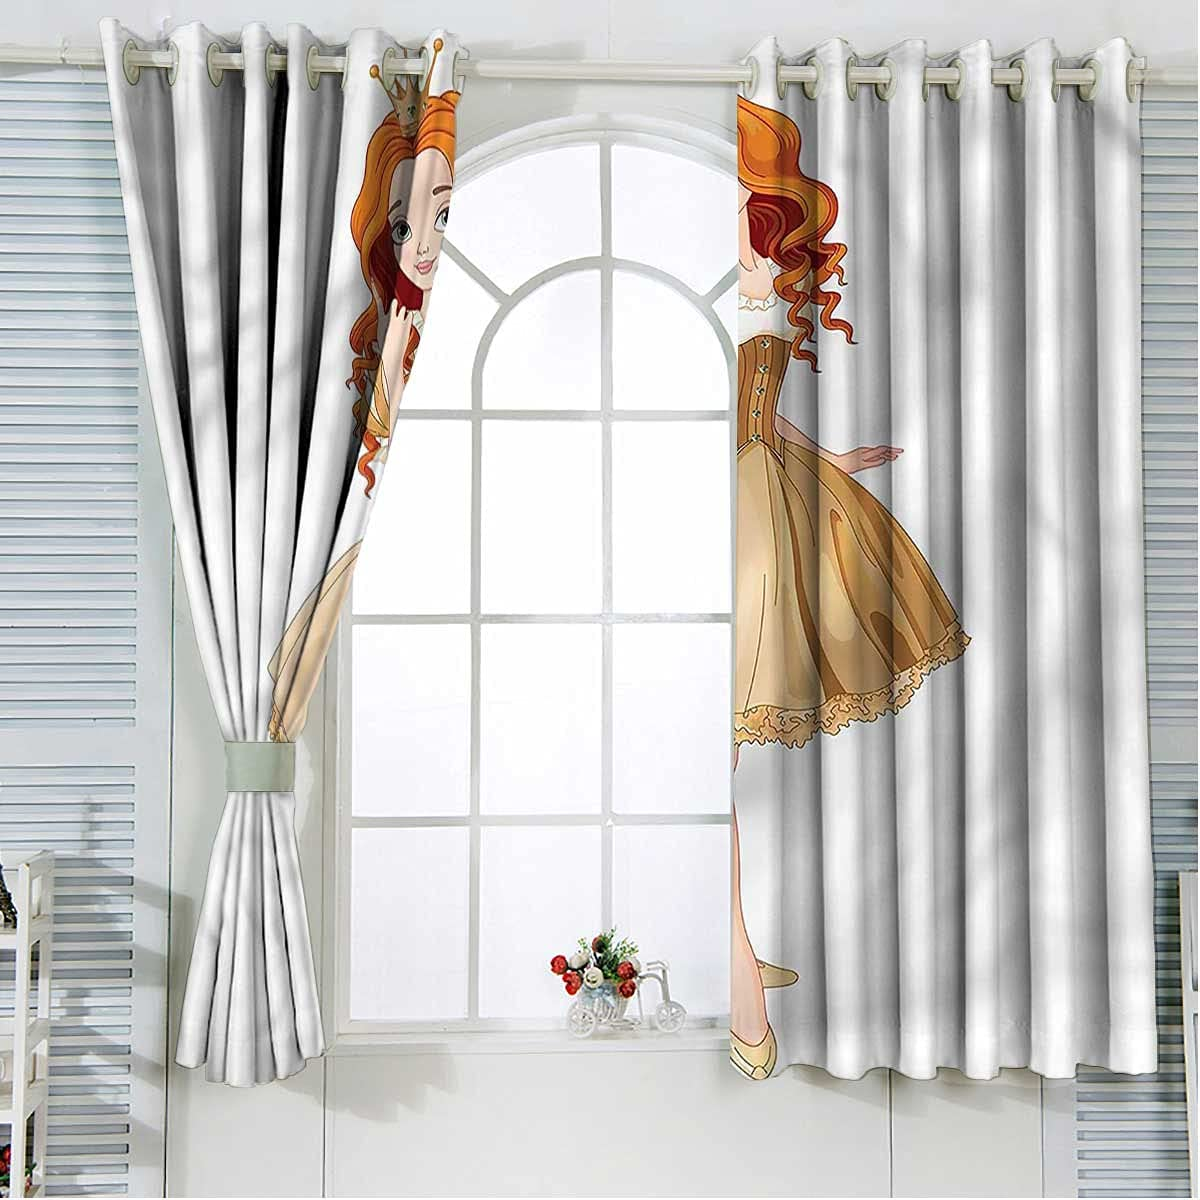 Princess Darkening Max 83% OFF Blackout Curtains 108 Manufacturer OFFicial shop Yellow Inch Length Dres